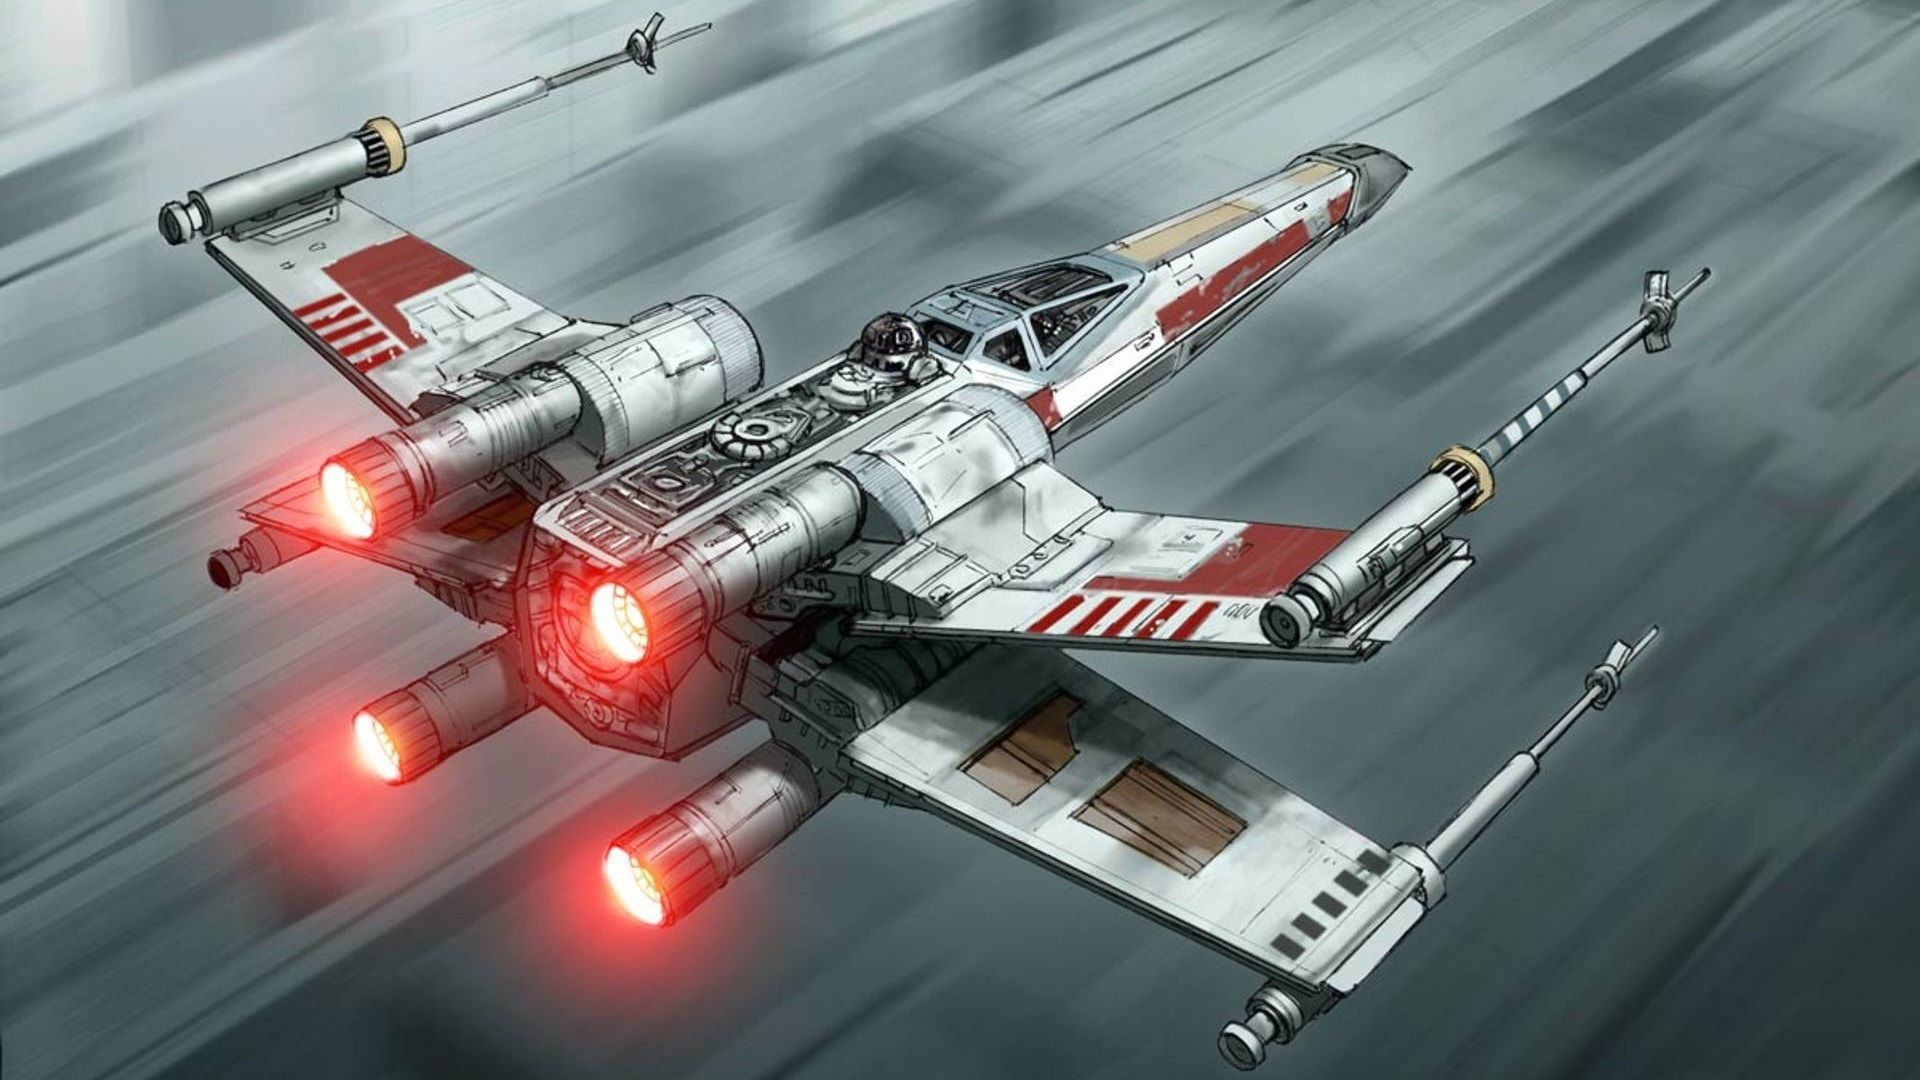 Xwing D Model By Hd Wallpapers Daily 1920 1080 X Wing Wallpaper 45 Wallpapers Adorable Wallpapers Wings Wallpaper Star Wars Mural Star Wars Poster